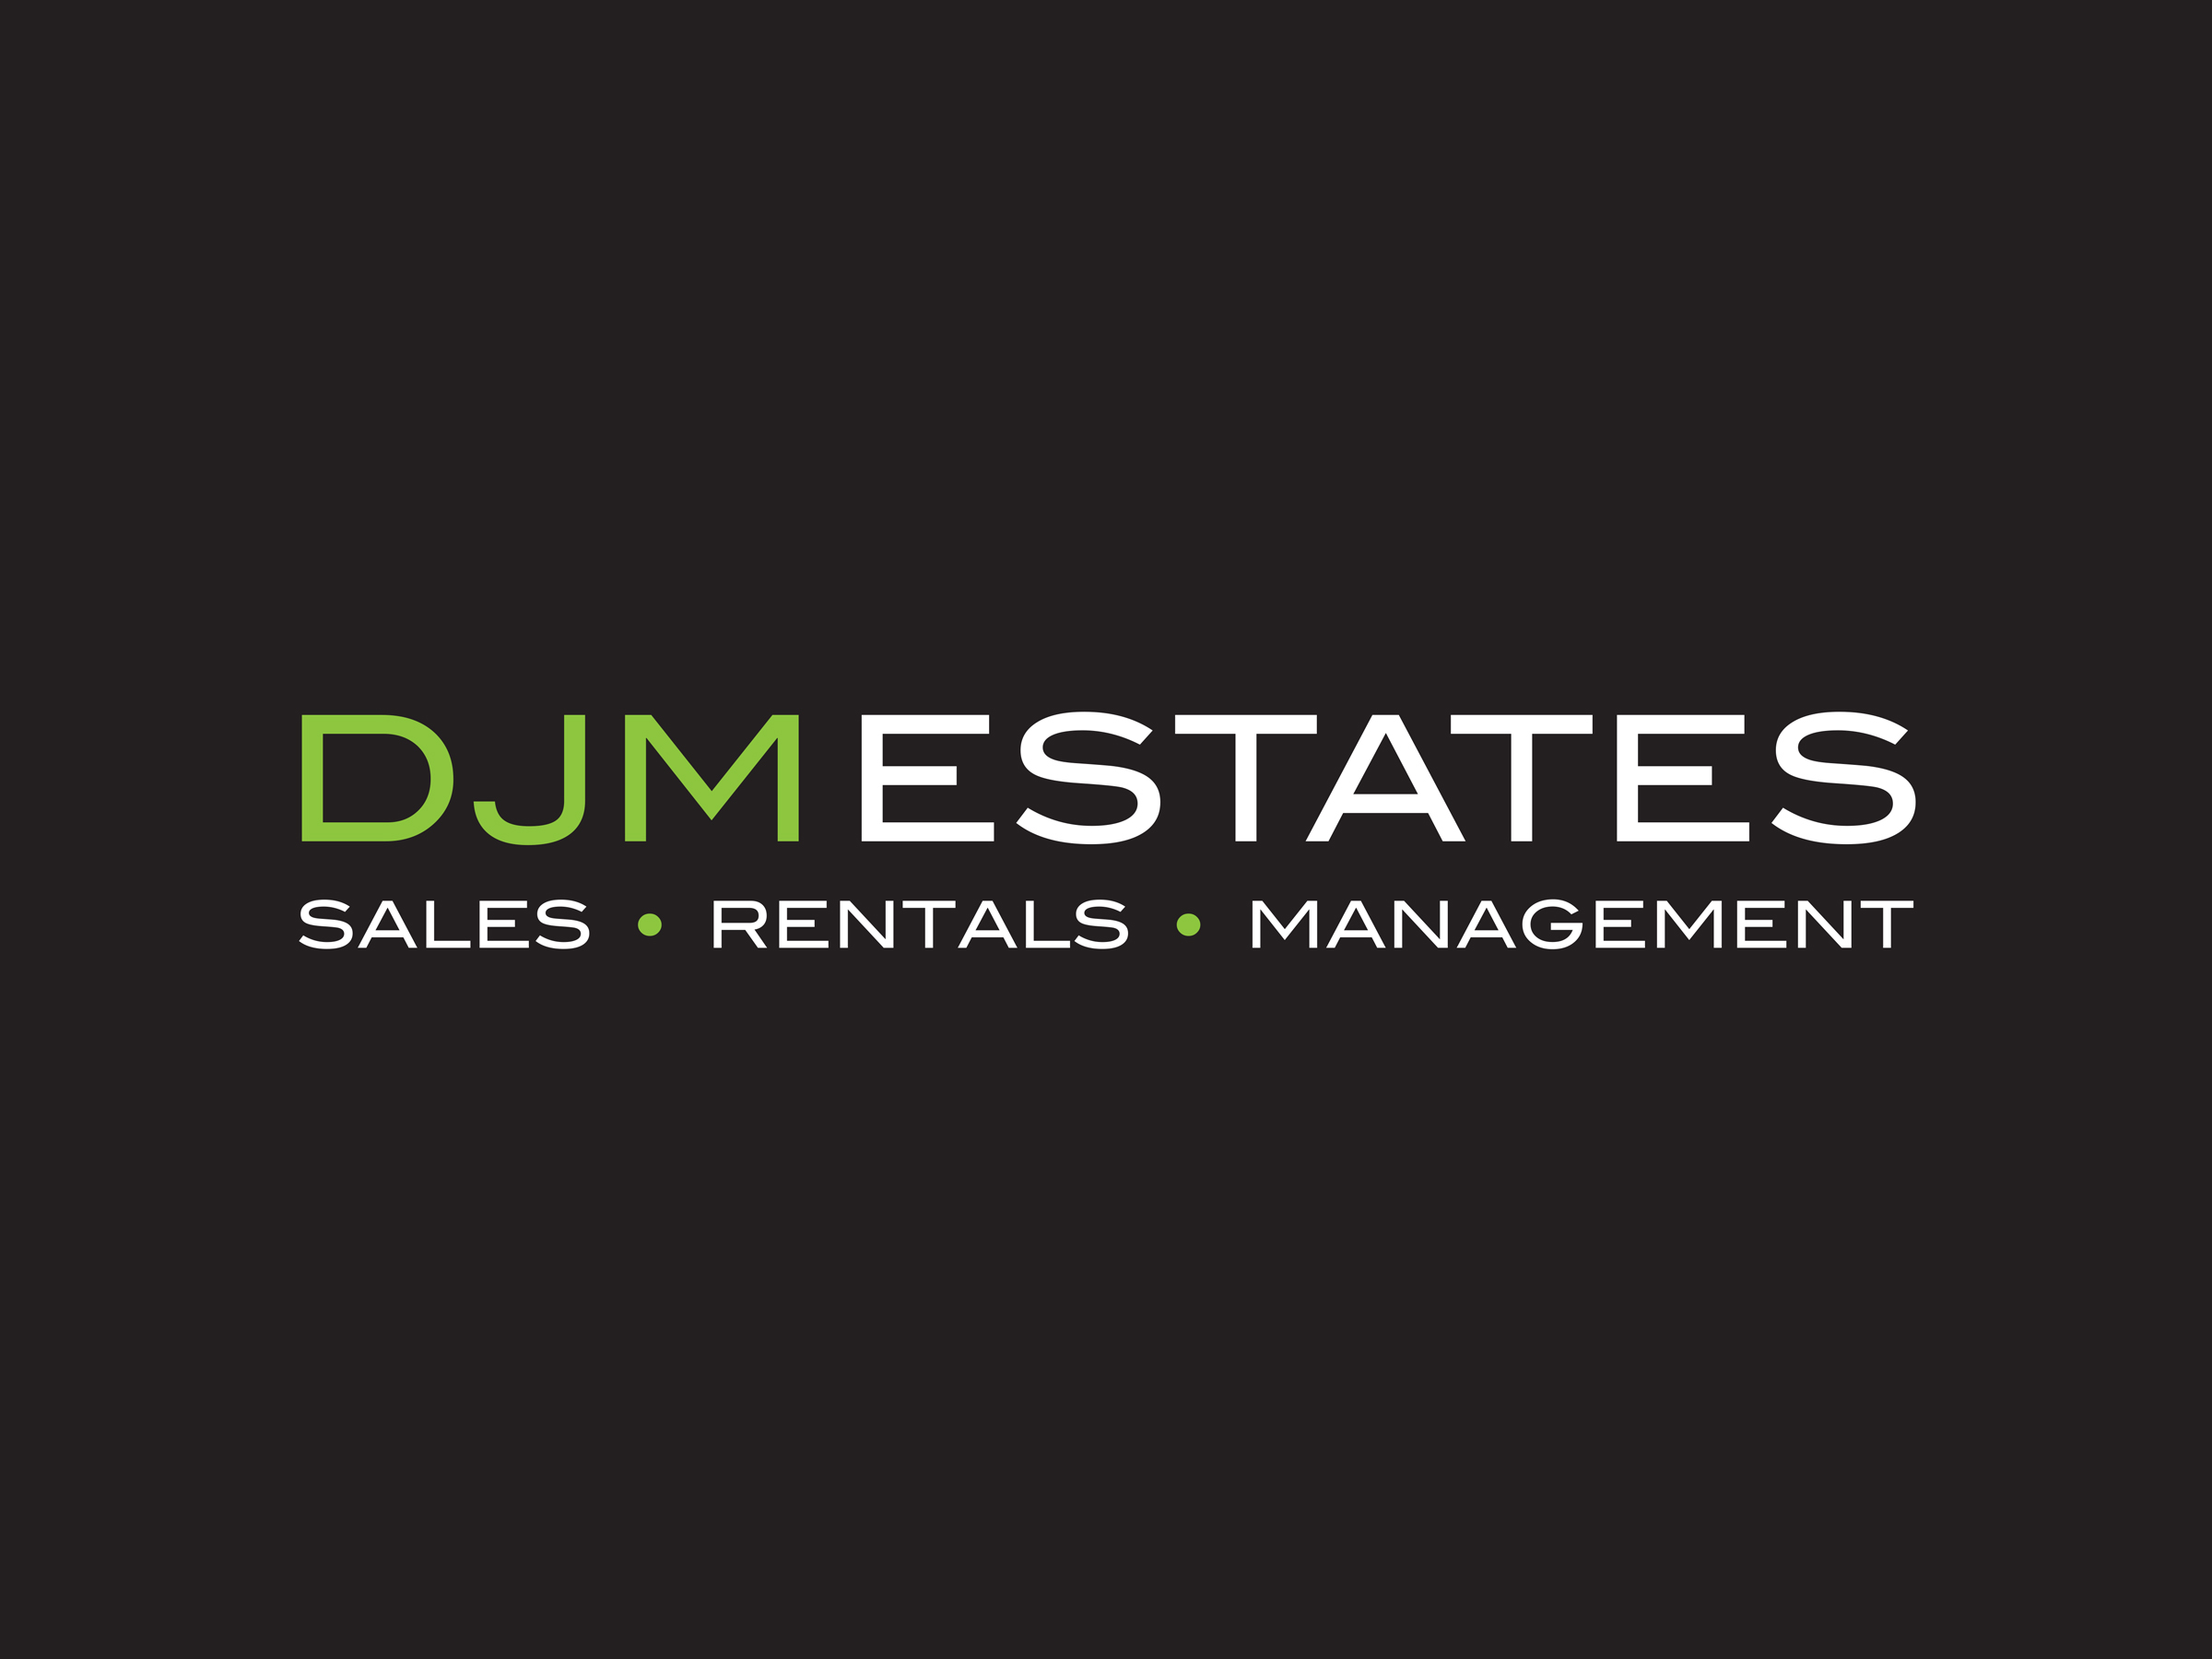 DJM Estates_logo.JPG